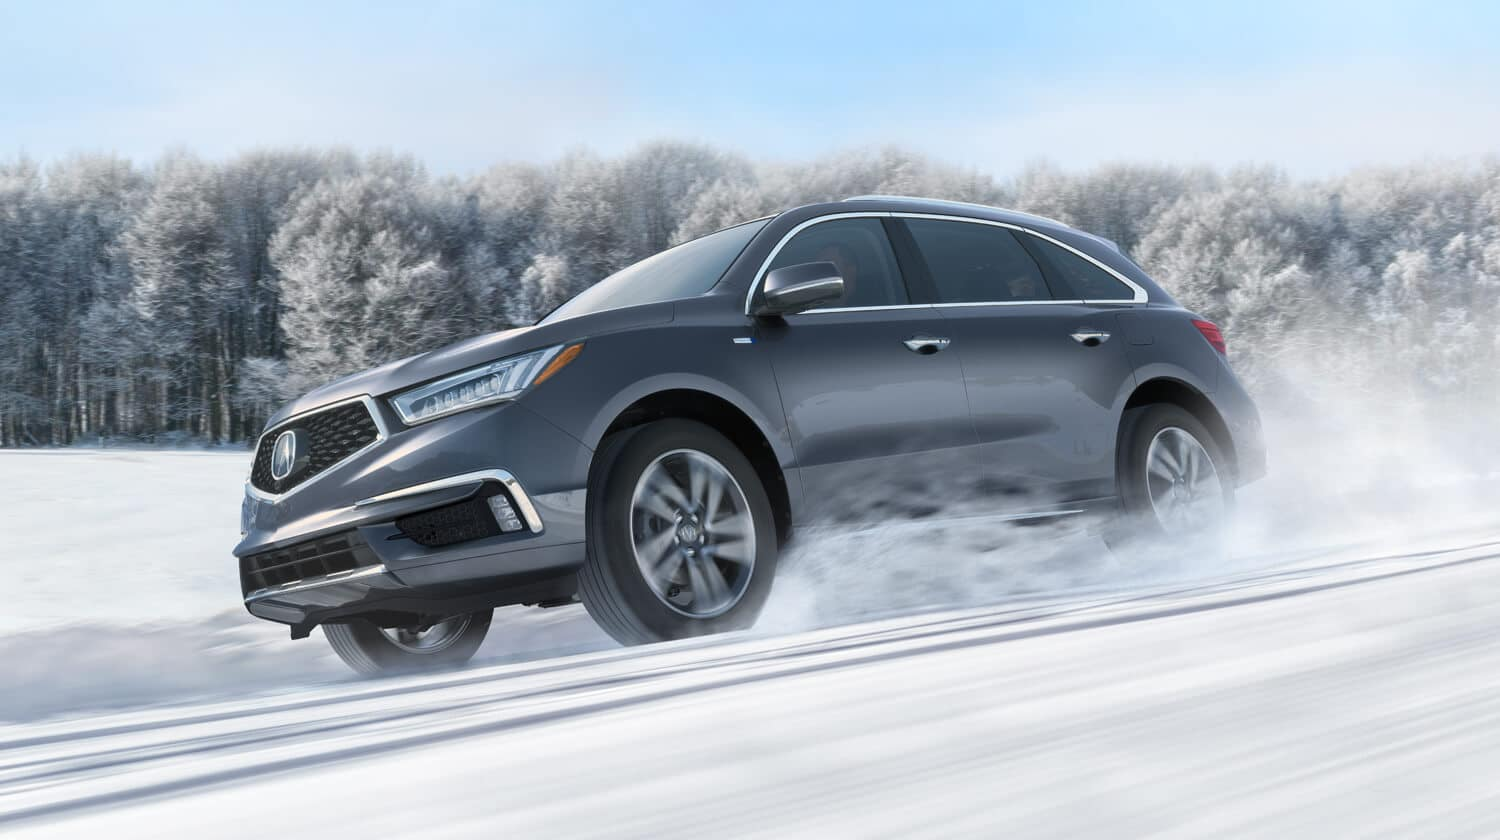 2020 Acura Mdx Colors Interior And Exterior Color Options Of The 2020 Acura Mdx